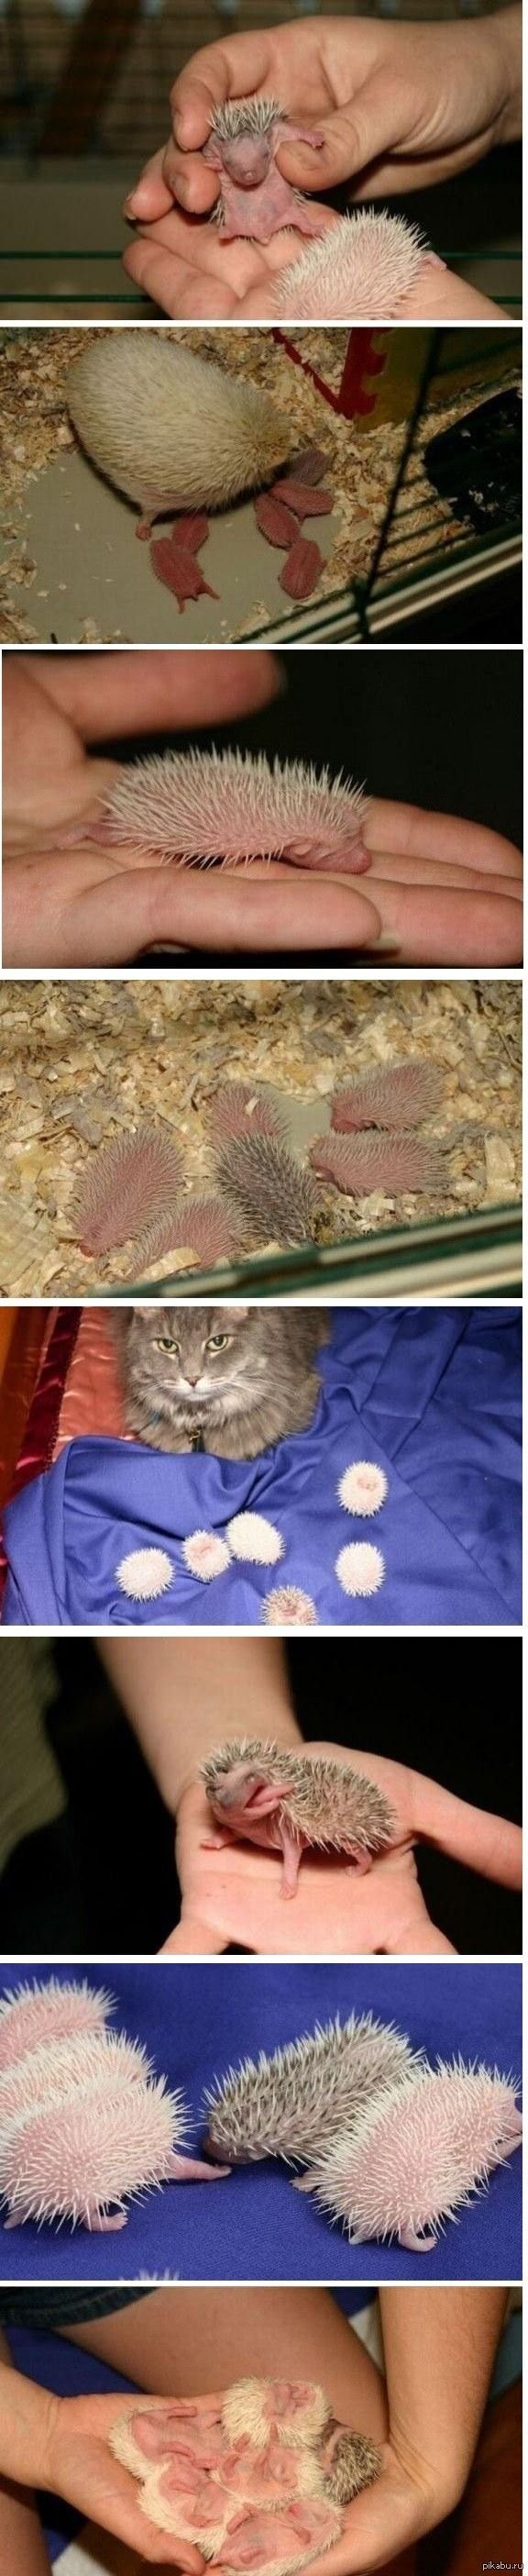 Baby Hedgehogs are weird little things... but cute!